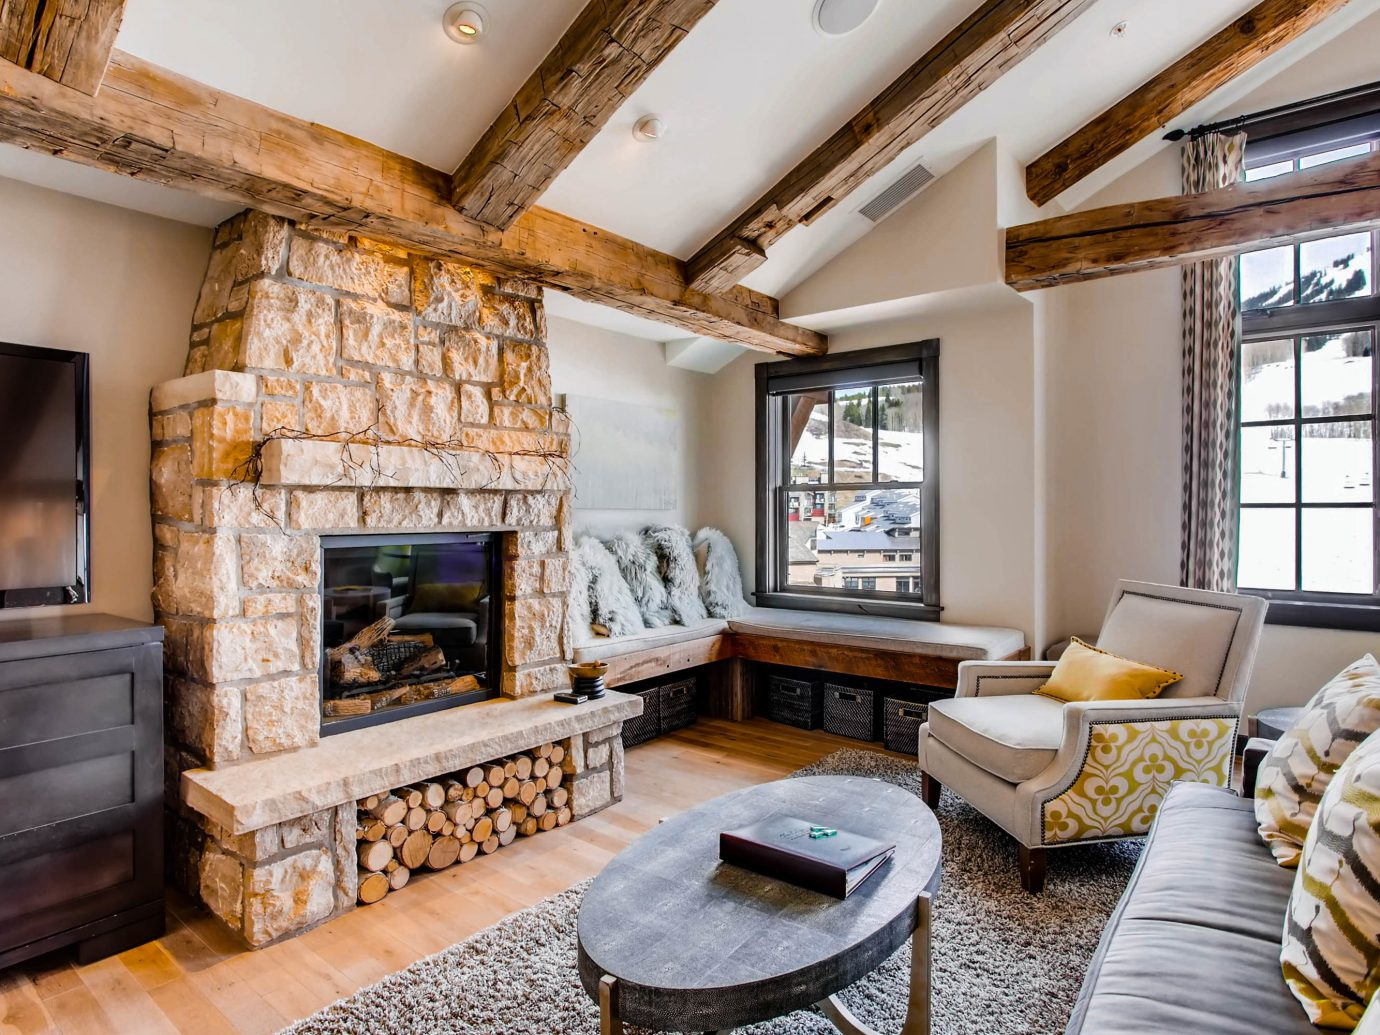 Fall Travel Mountains + Skiing National Parks Outdoors + Adventure Trip Ideas indoor Living Fireplace room floor living room window fire interior design real estate furniture estate hearth interior designer stone